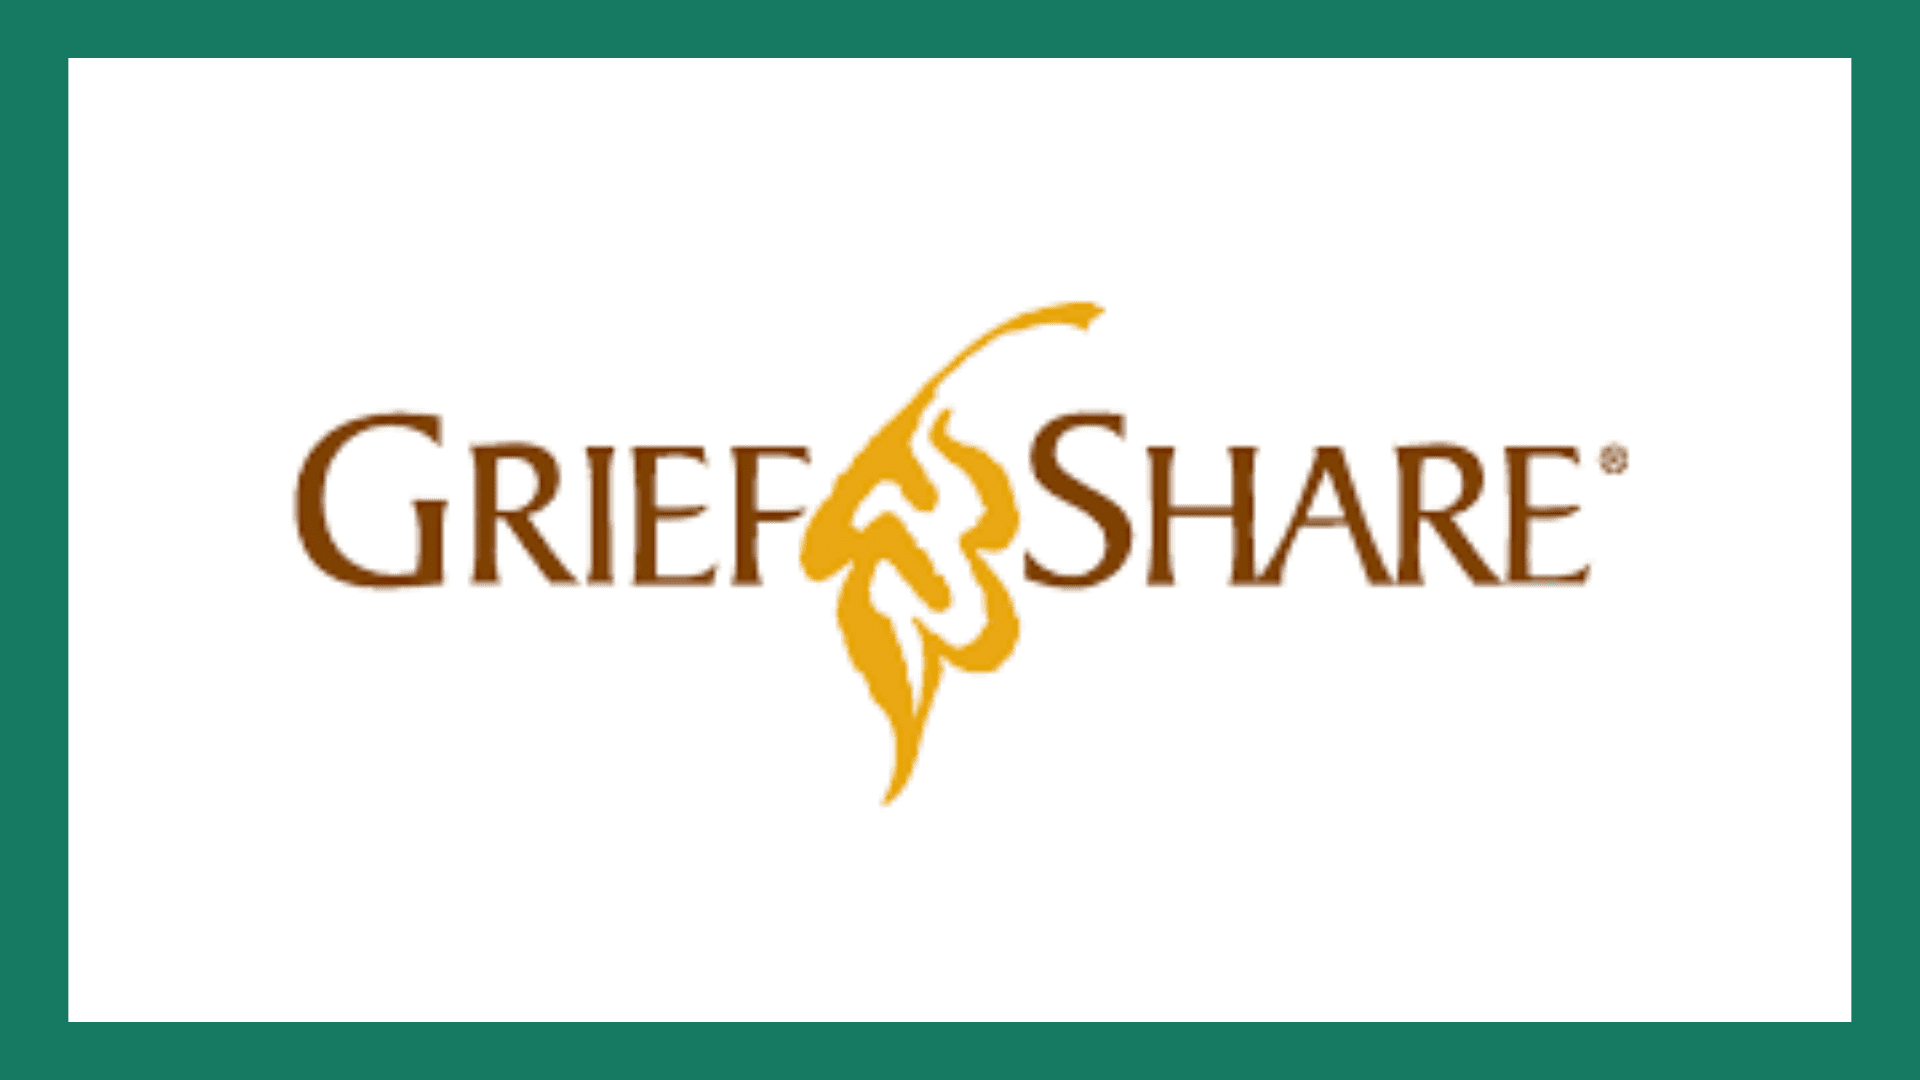 Grief Share